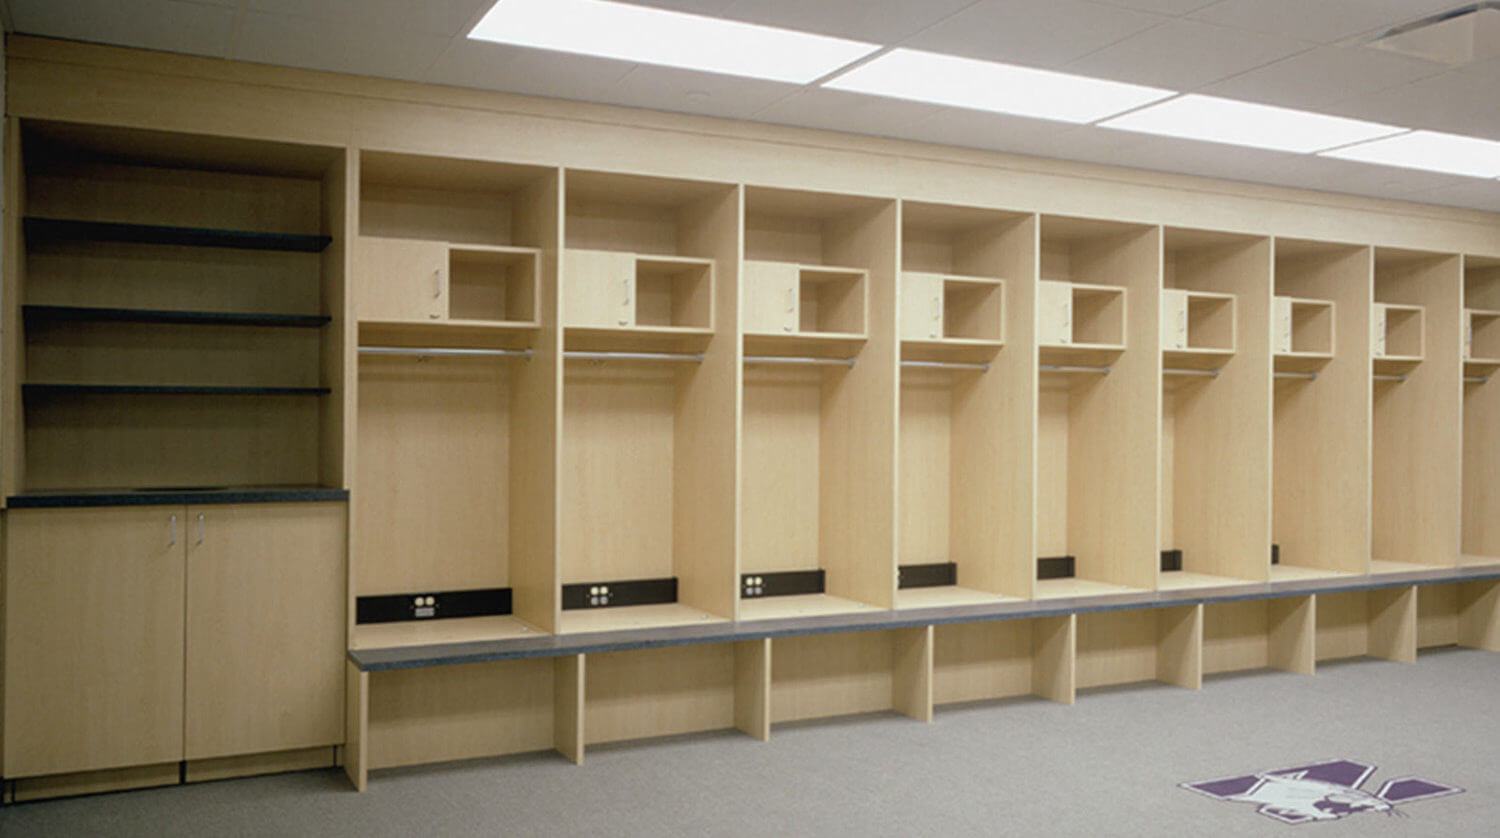 Northwestern University Locker Room Renovations Project